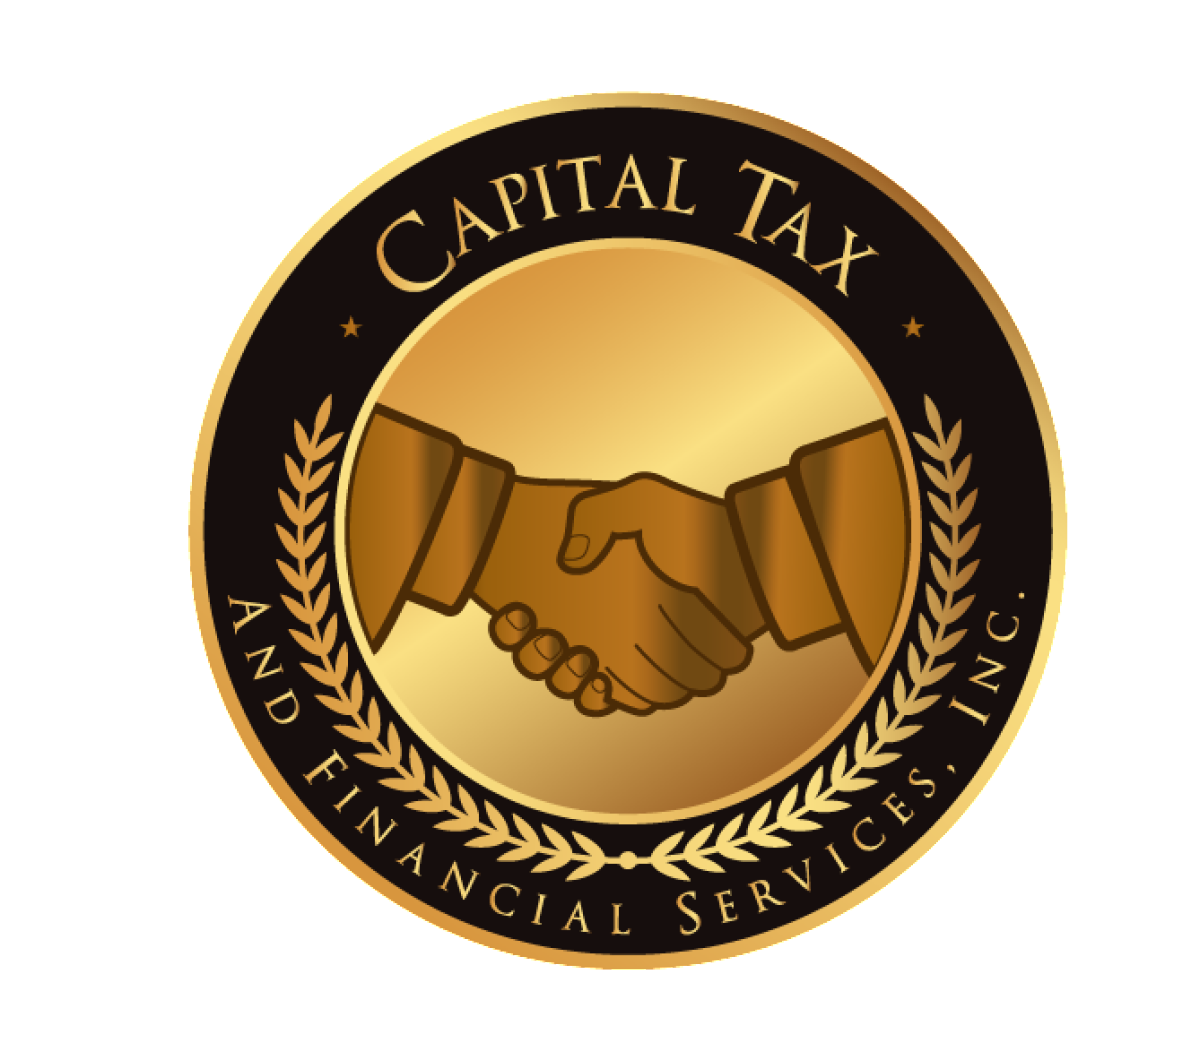 Capital Tax and Financial Services, Inc.